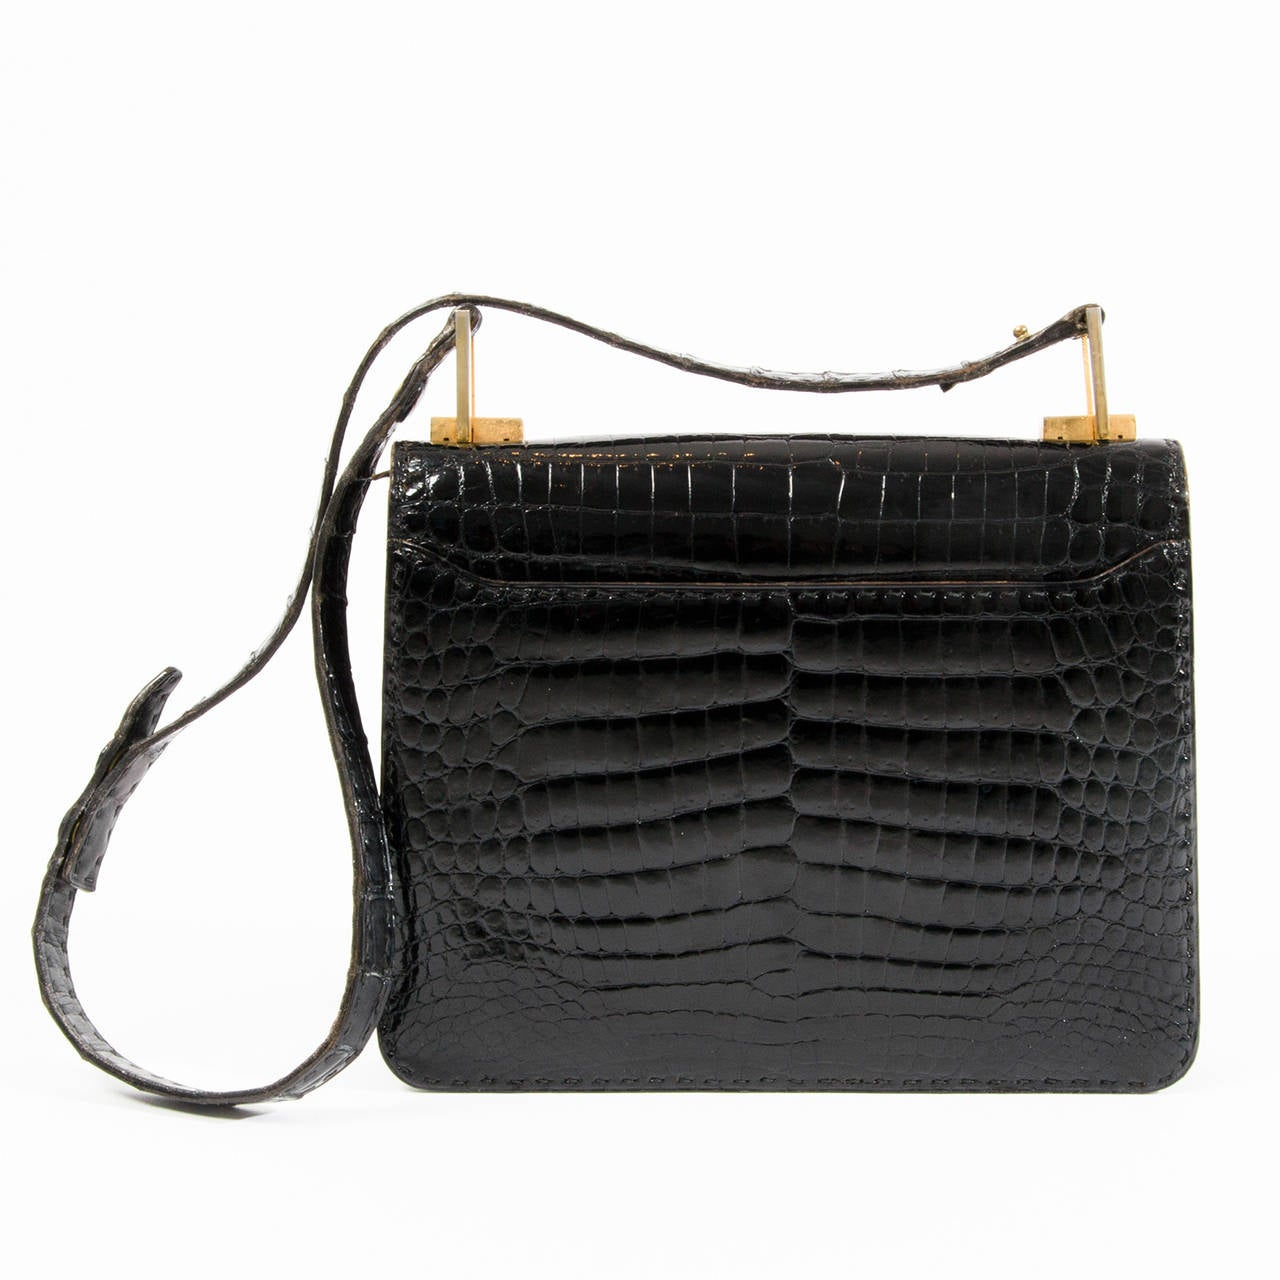 Off-White™ is well-known for its accessories; in particular, those Binder Clip bags that have found their way onto the arms of it girls worldwide. Now, Virgil Abloh's brand is back with a patent croc-embossed bag that's equal parts edgy and elegant. What the mini bag lacks in size, it more than makes up for in street-cred. The main compartment boasts a zipped pocket as well as hidden.